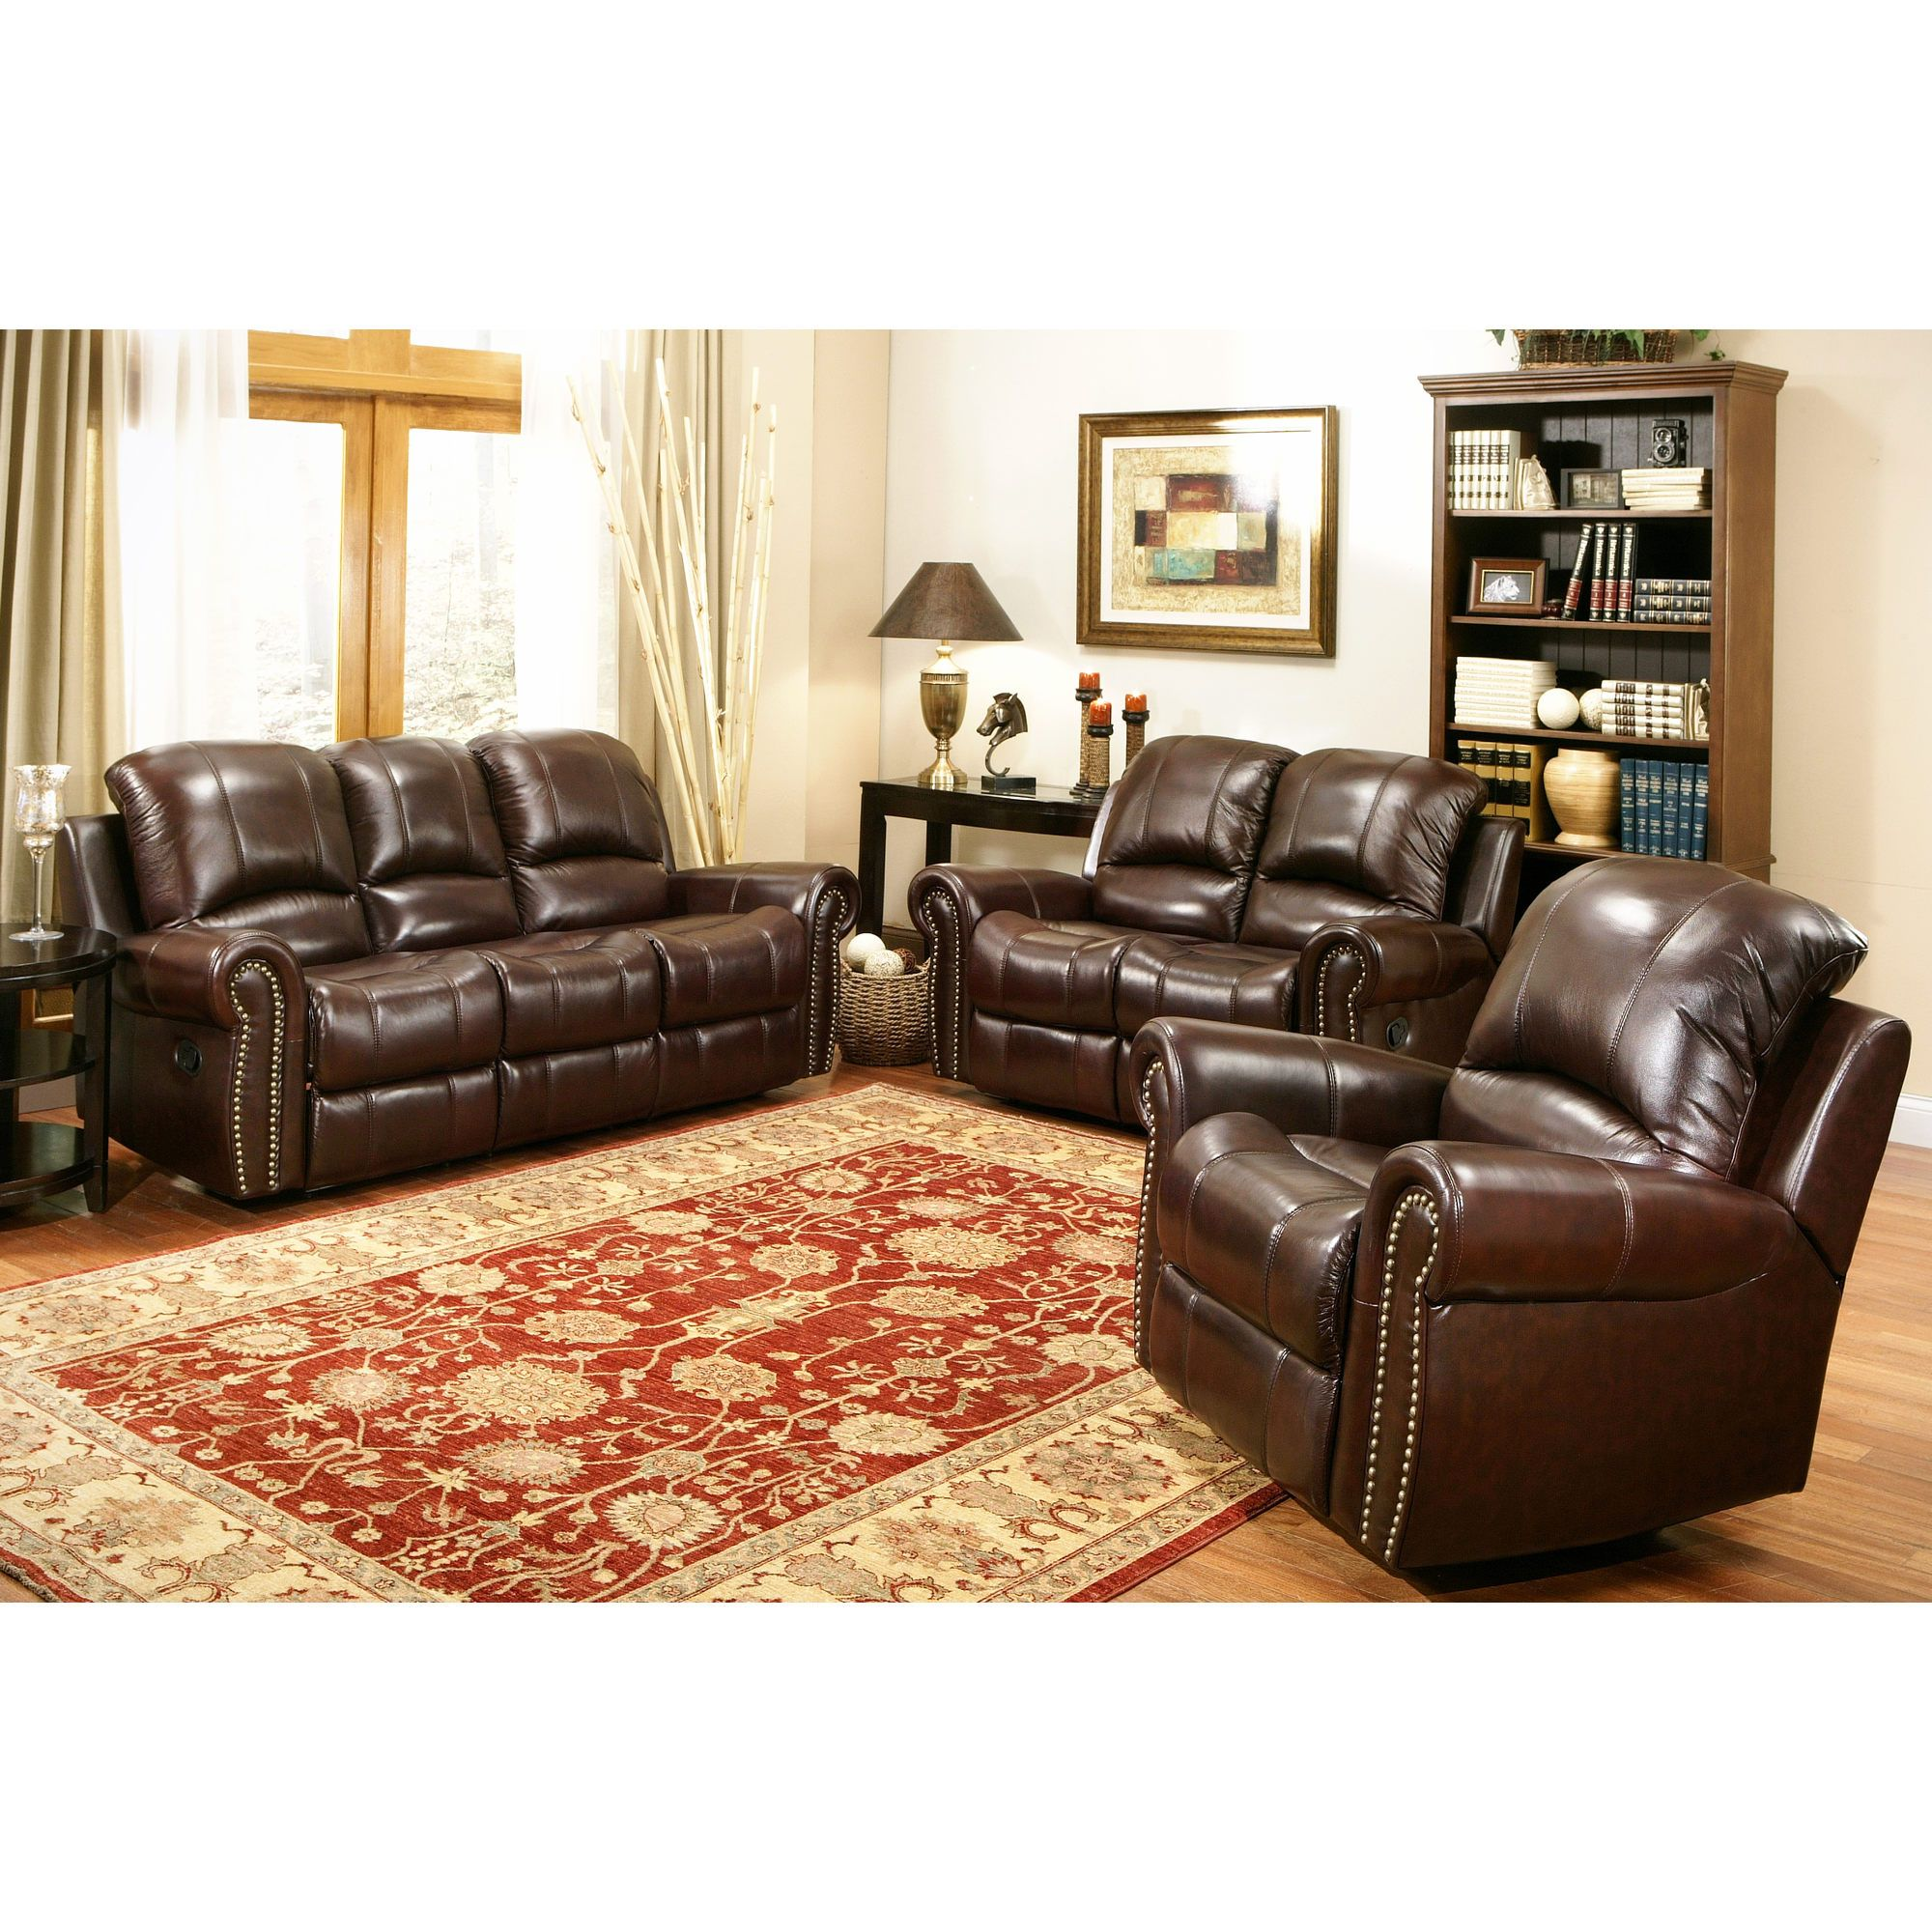 Tremendous Abbyson Living Berkshire 3 Piece Leather Reclining Furniture Lamtechconsult Wood Chair Design Ideas Lamtechconsultcom